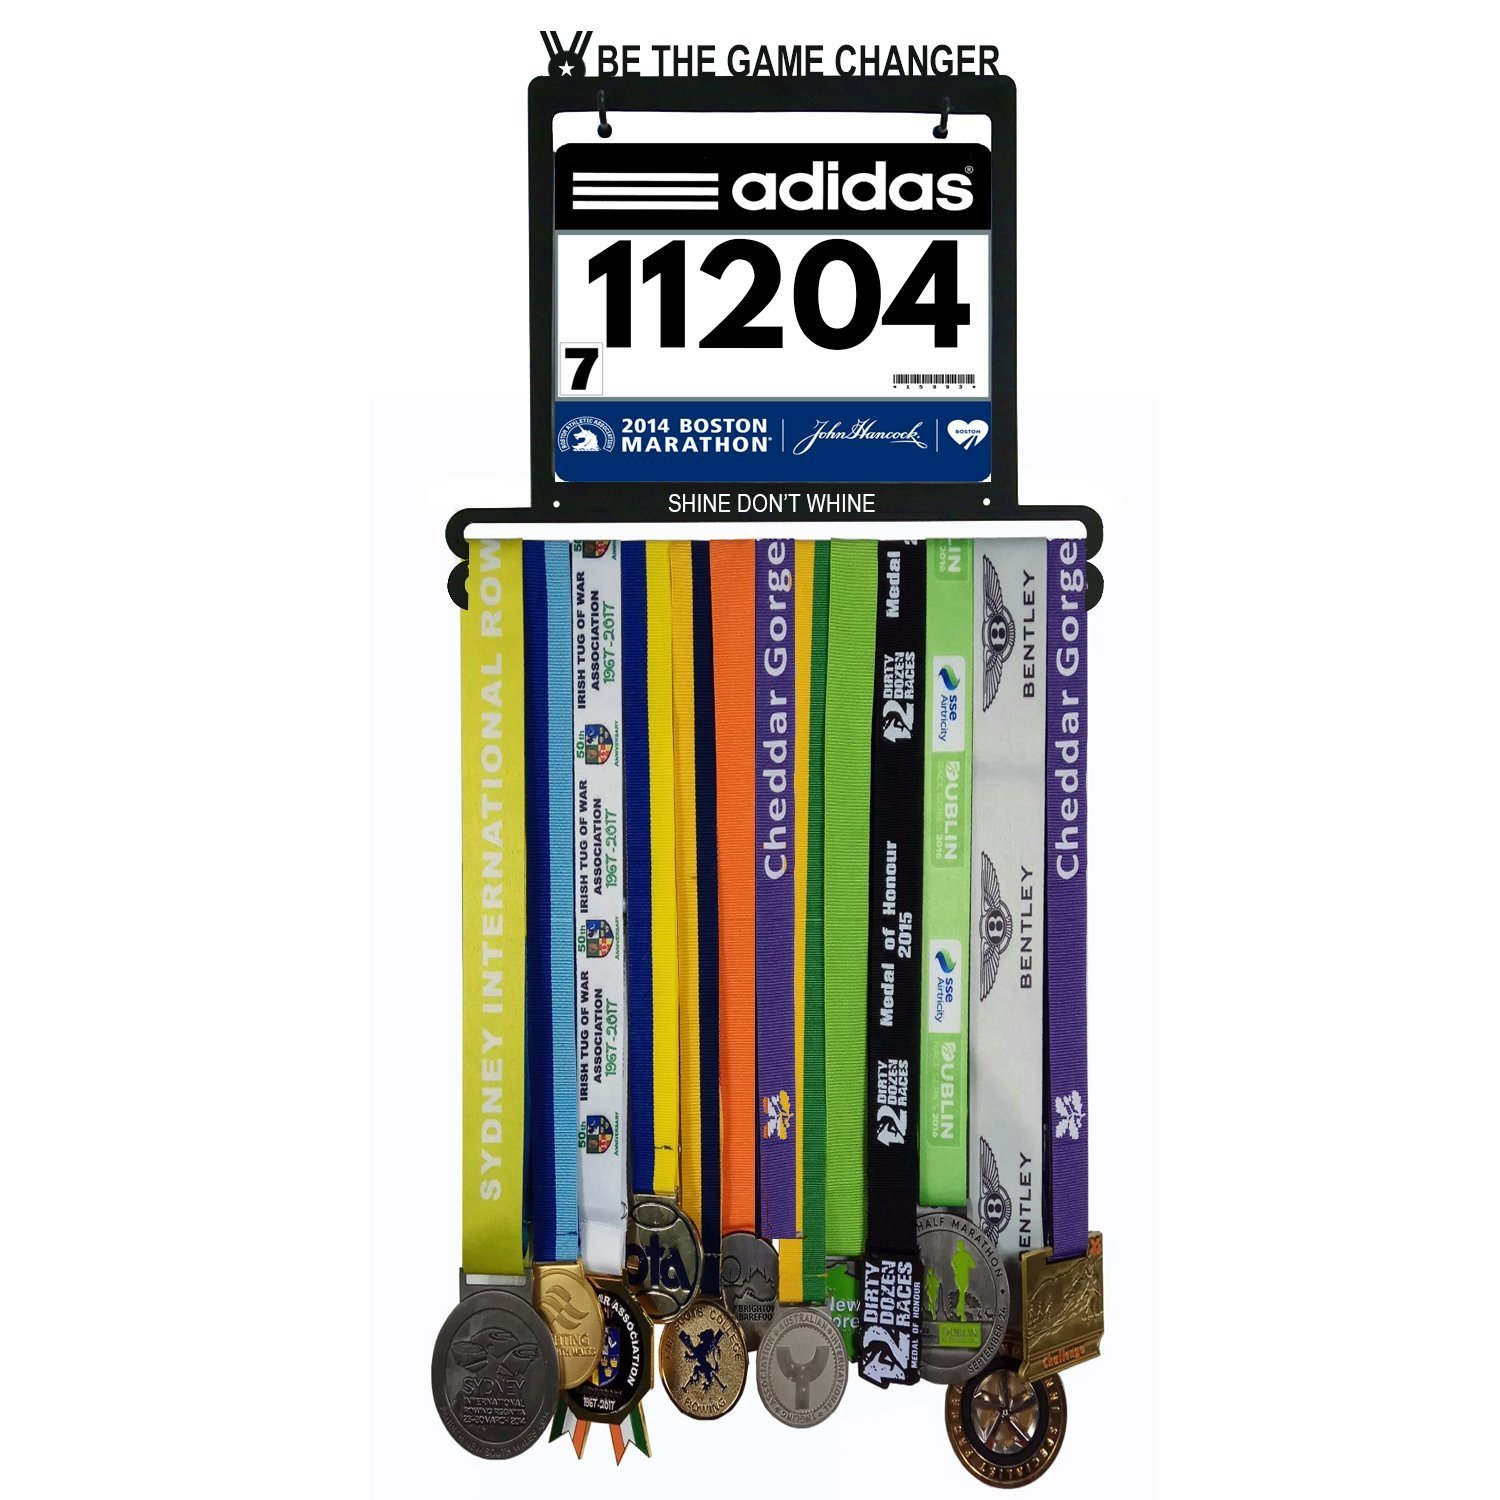 Wall Mounted Medal Hanger| Medal Rack for Runners, Gymnastics, Soccer, Wrestling, Athletics | Unique Race Bib Holder and Medal Display Frame by AJ Gear